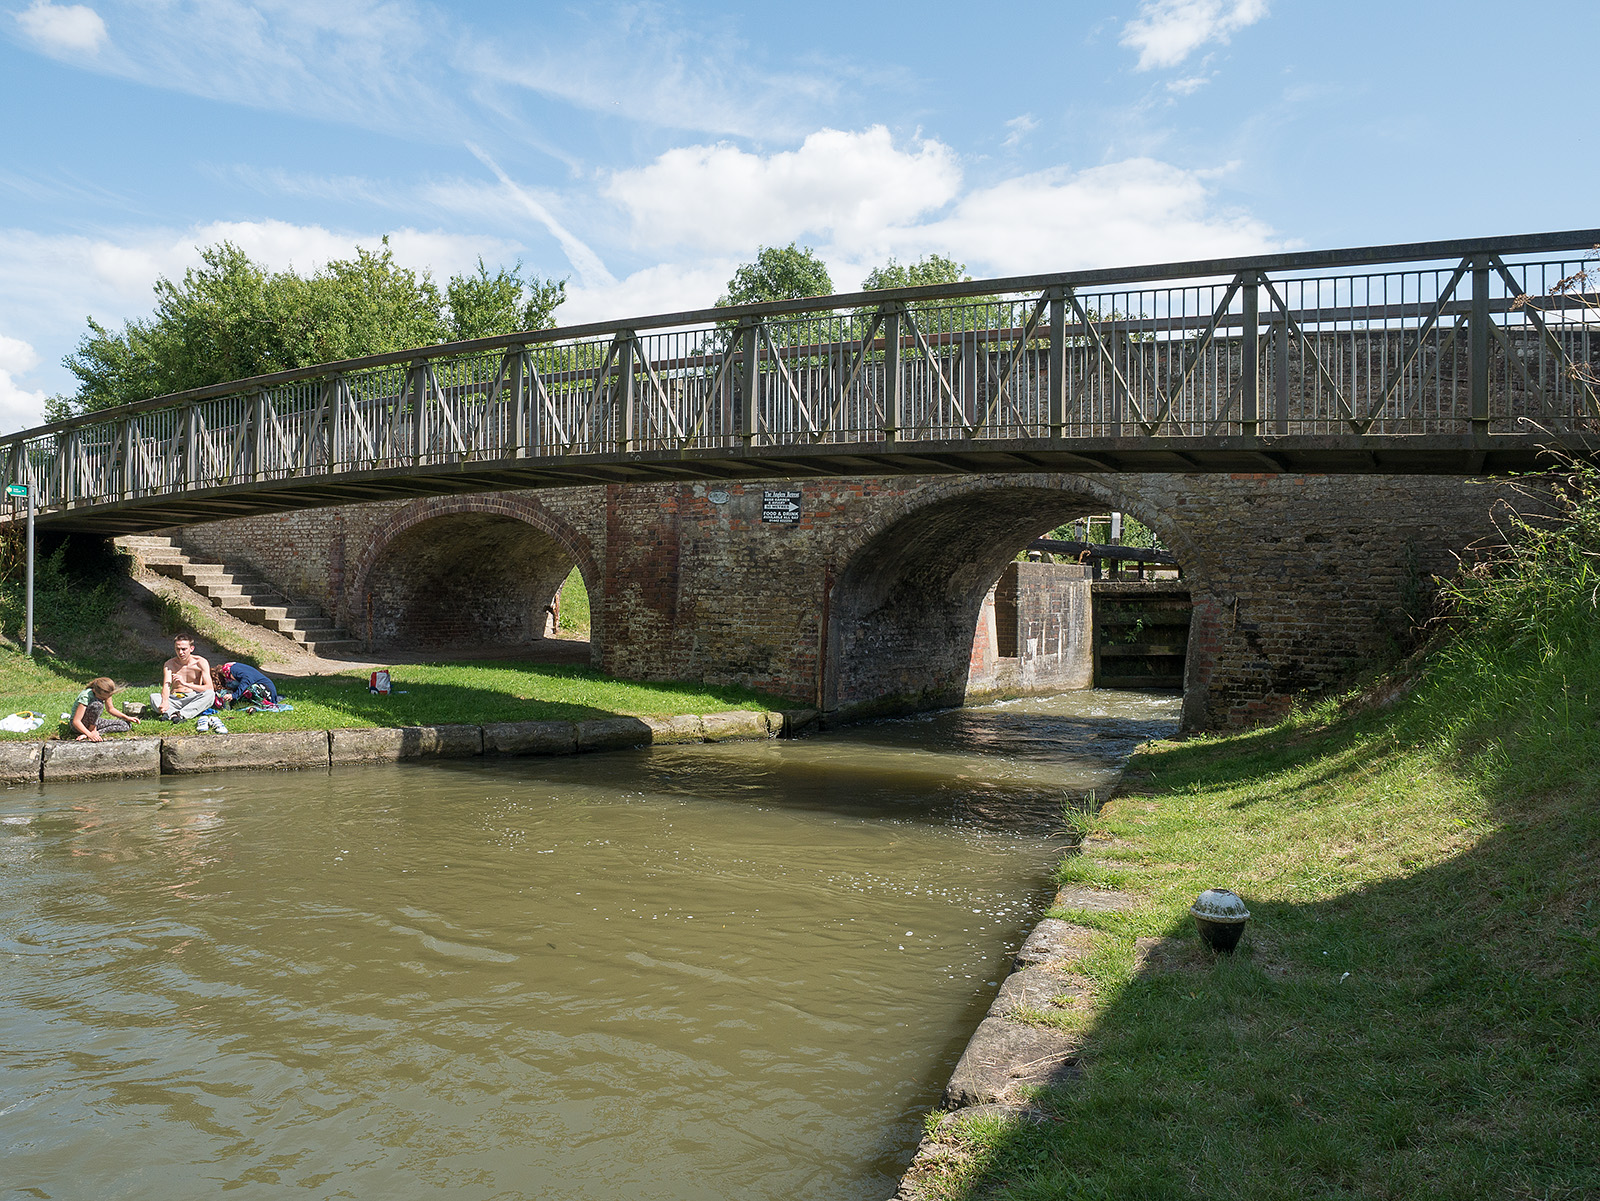 Looking back at bridge 132 (Lower Icknield bridge), clearly showing the unused archway.